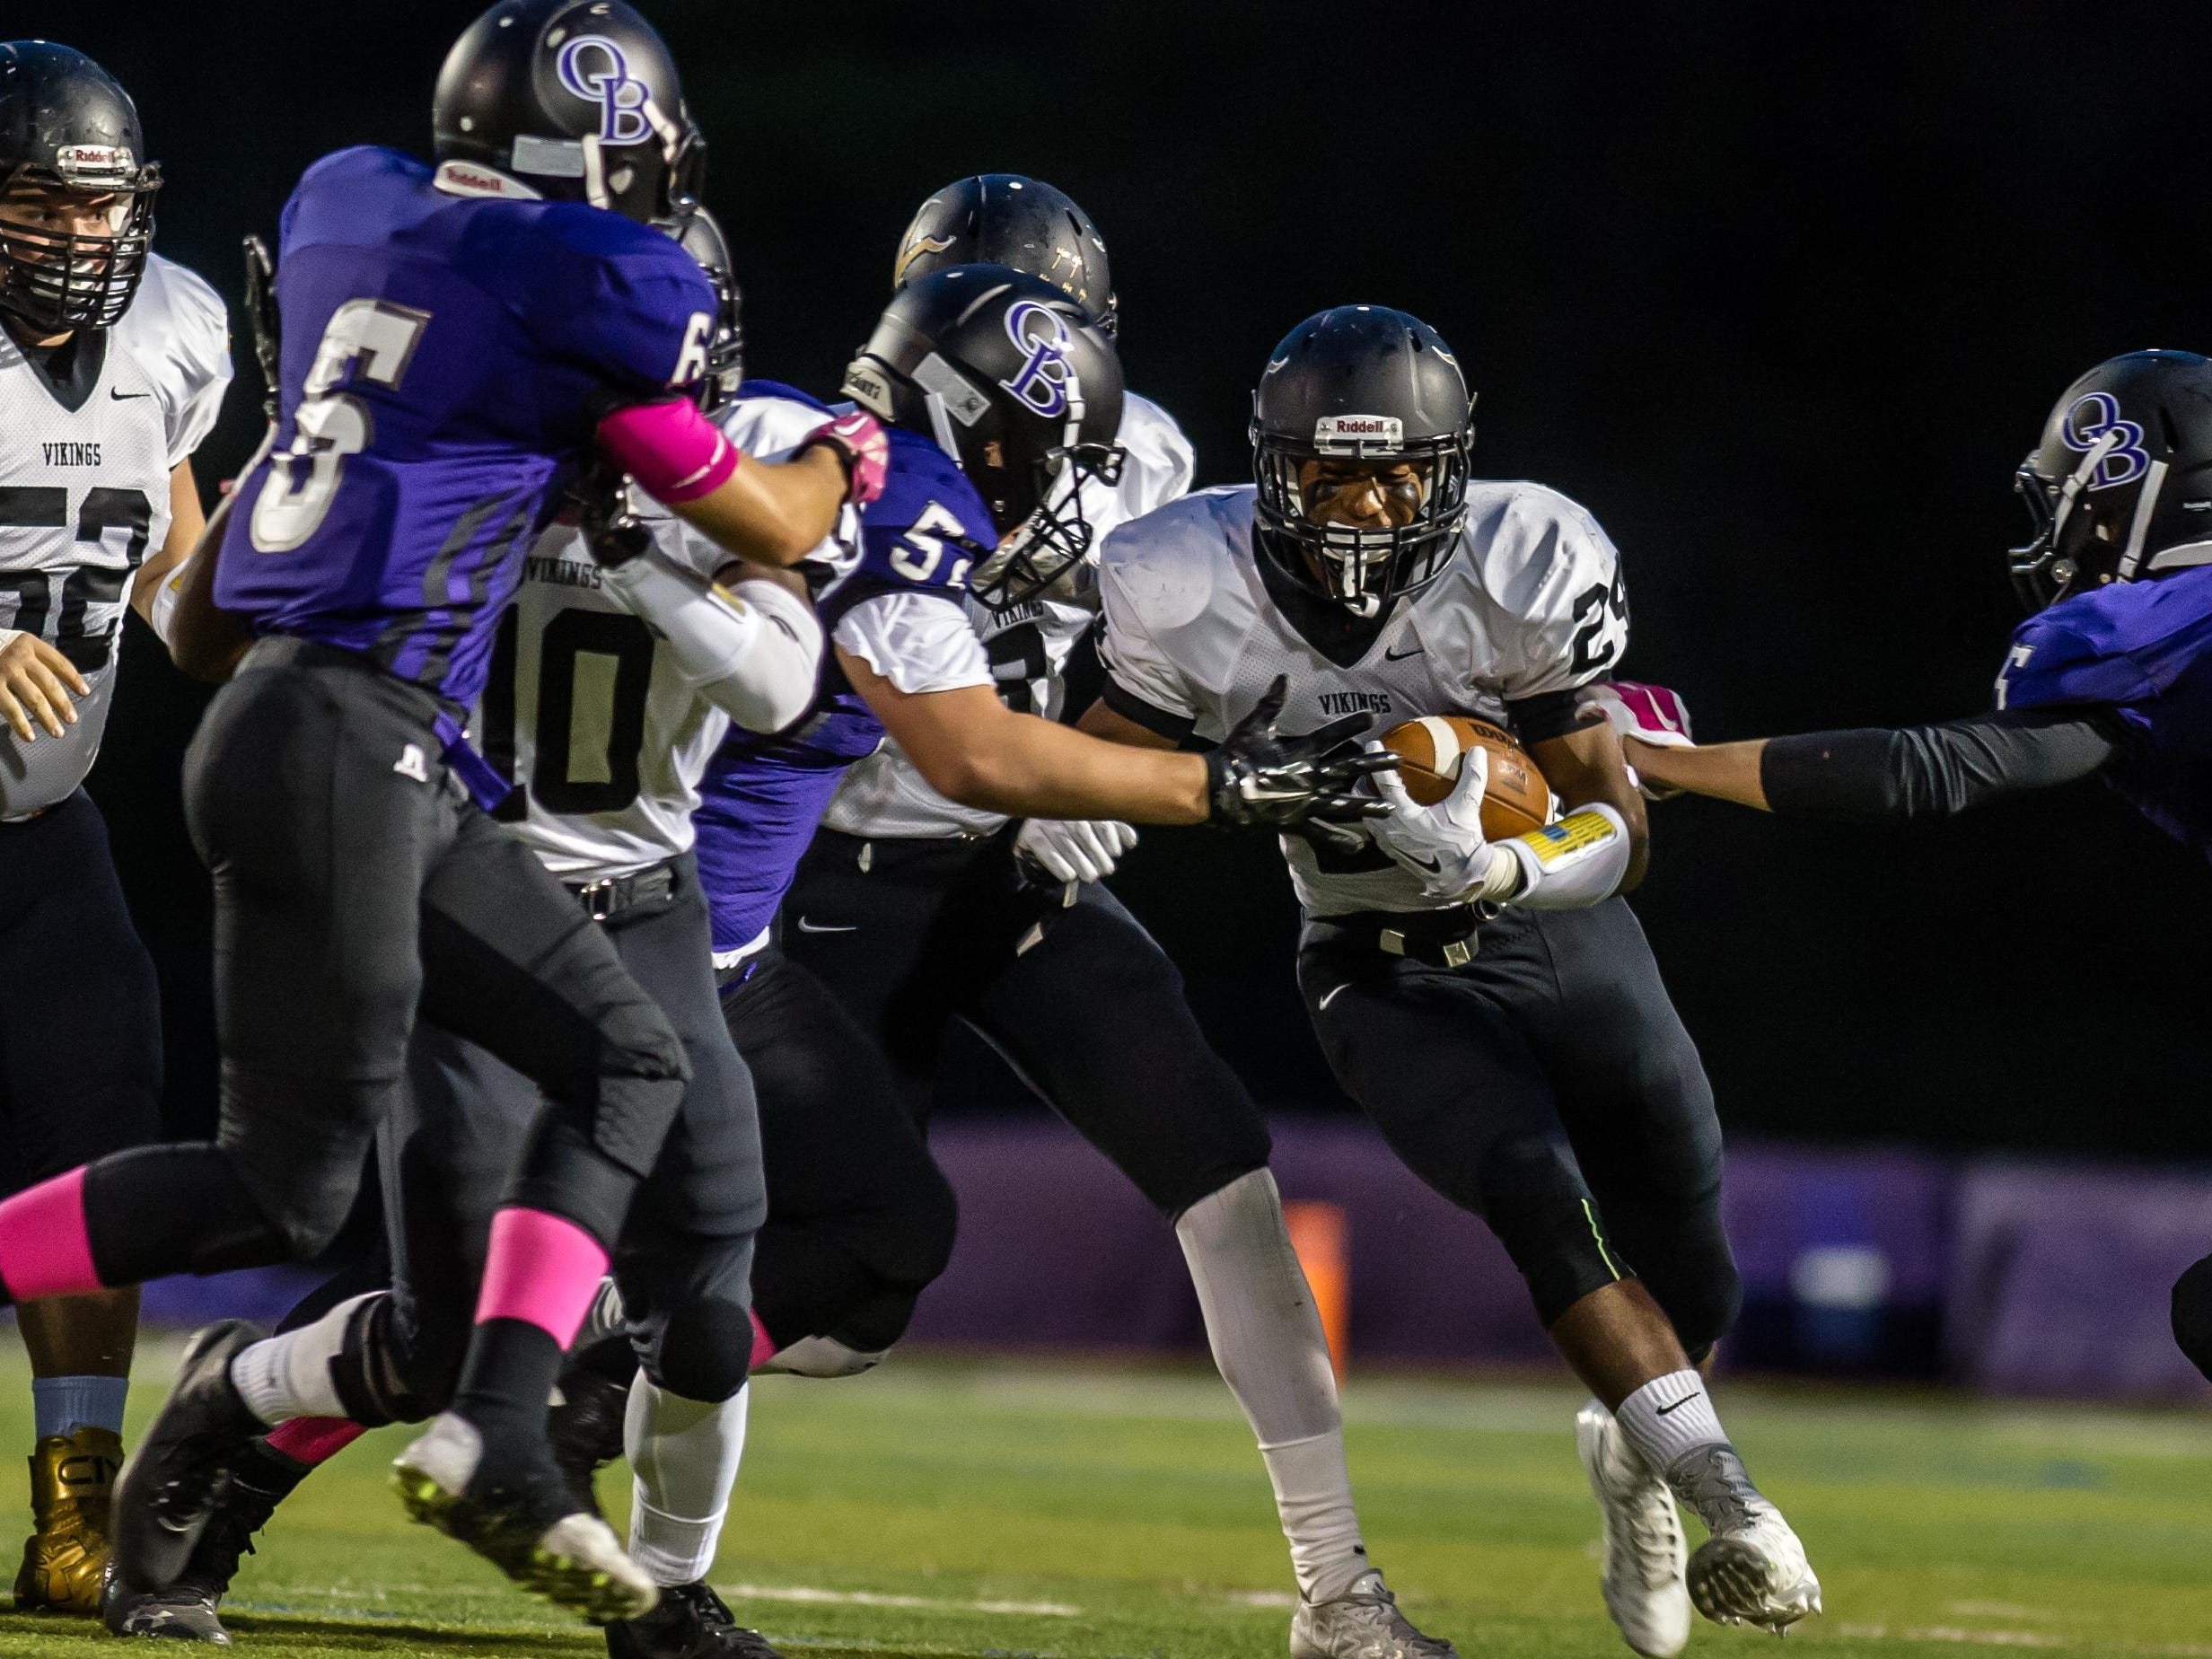 South Brunswick's Phil Campbell breaks through for extra yards against Old Bridge during their game in Old Bridge on Sept. 25, 2015. Photo by Jeff Granit